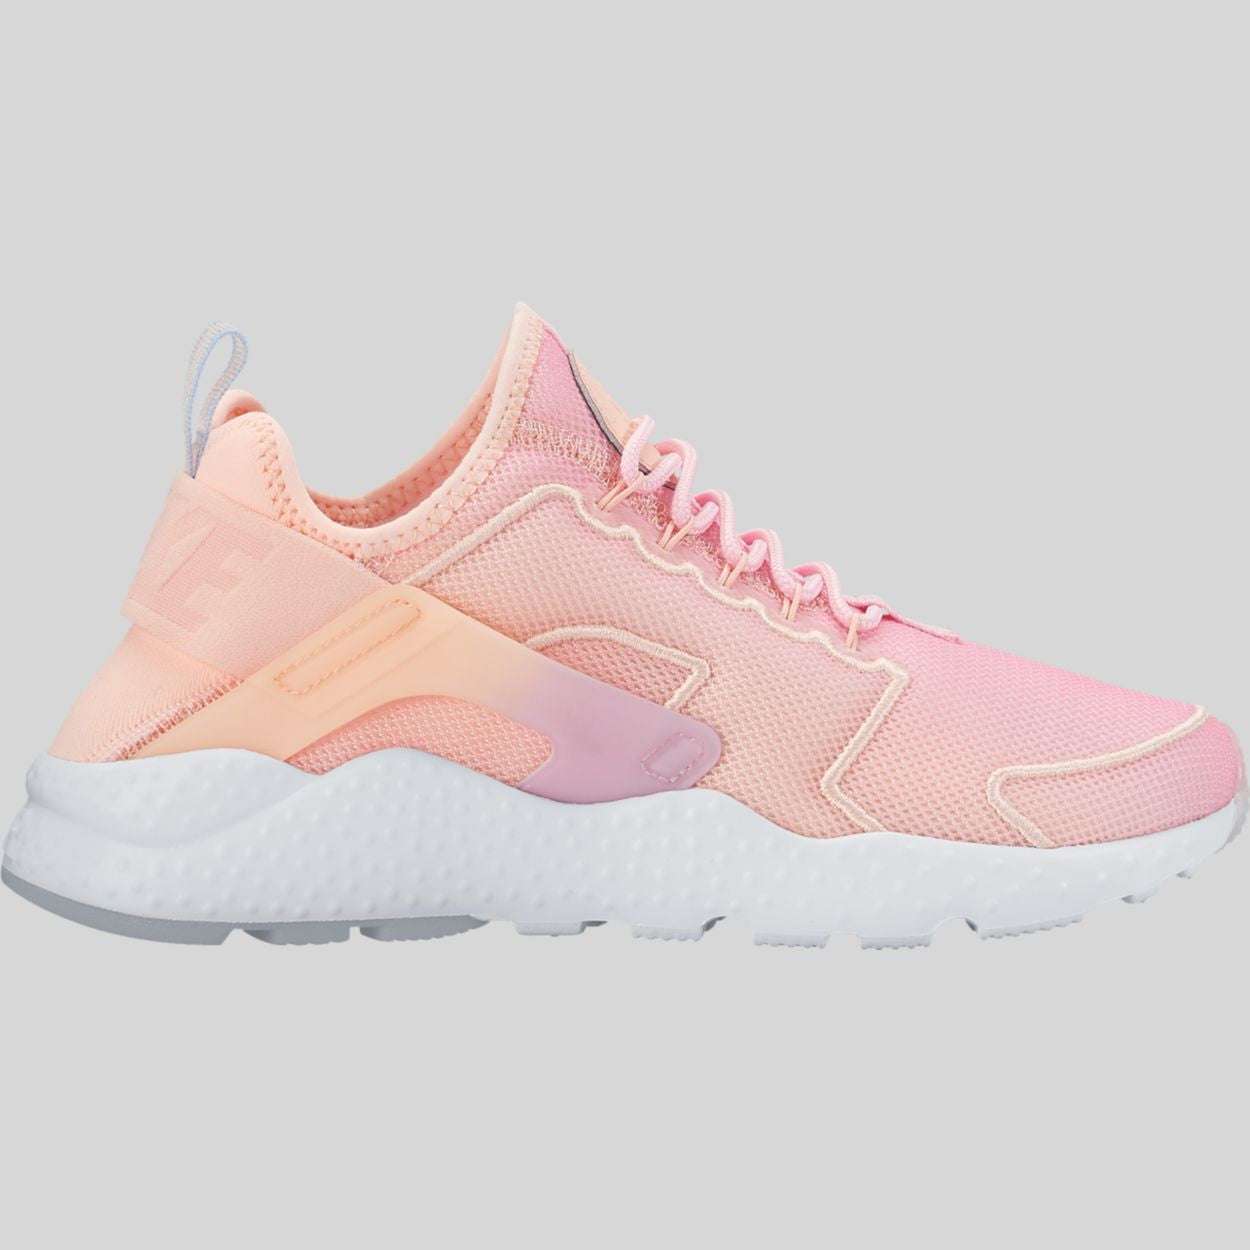 finest selection 19d2f 6aab9 Nike Wmns Air Huarache Run Ultra BR Orchid Sunset Glow White (833292-501)